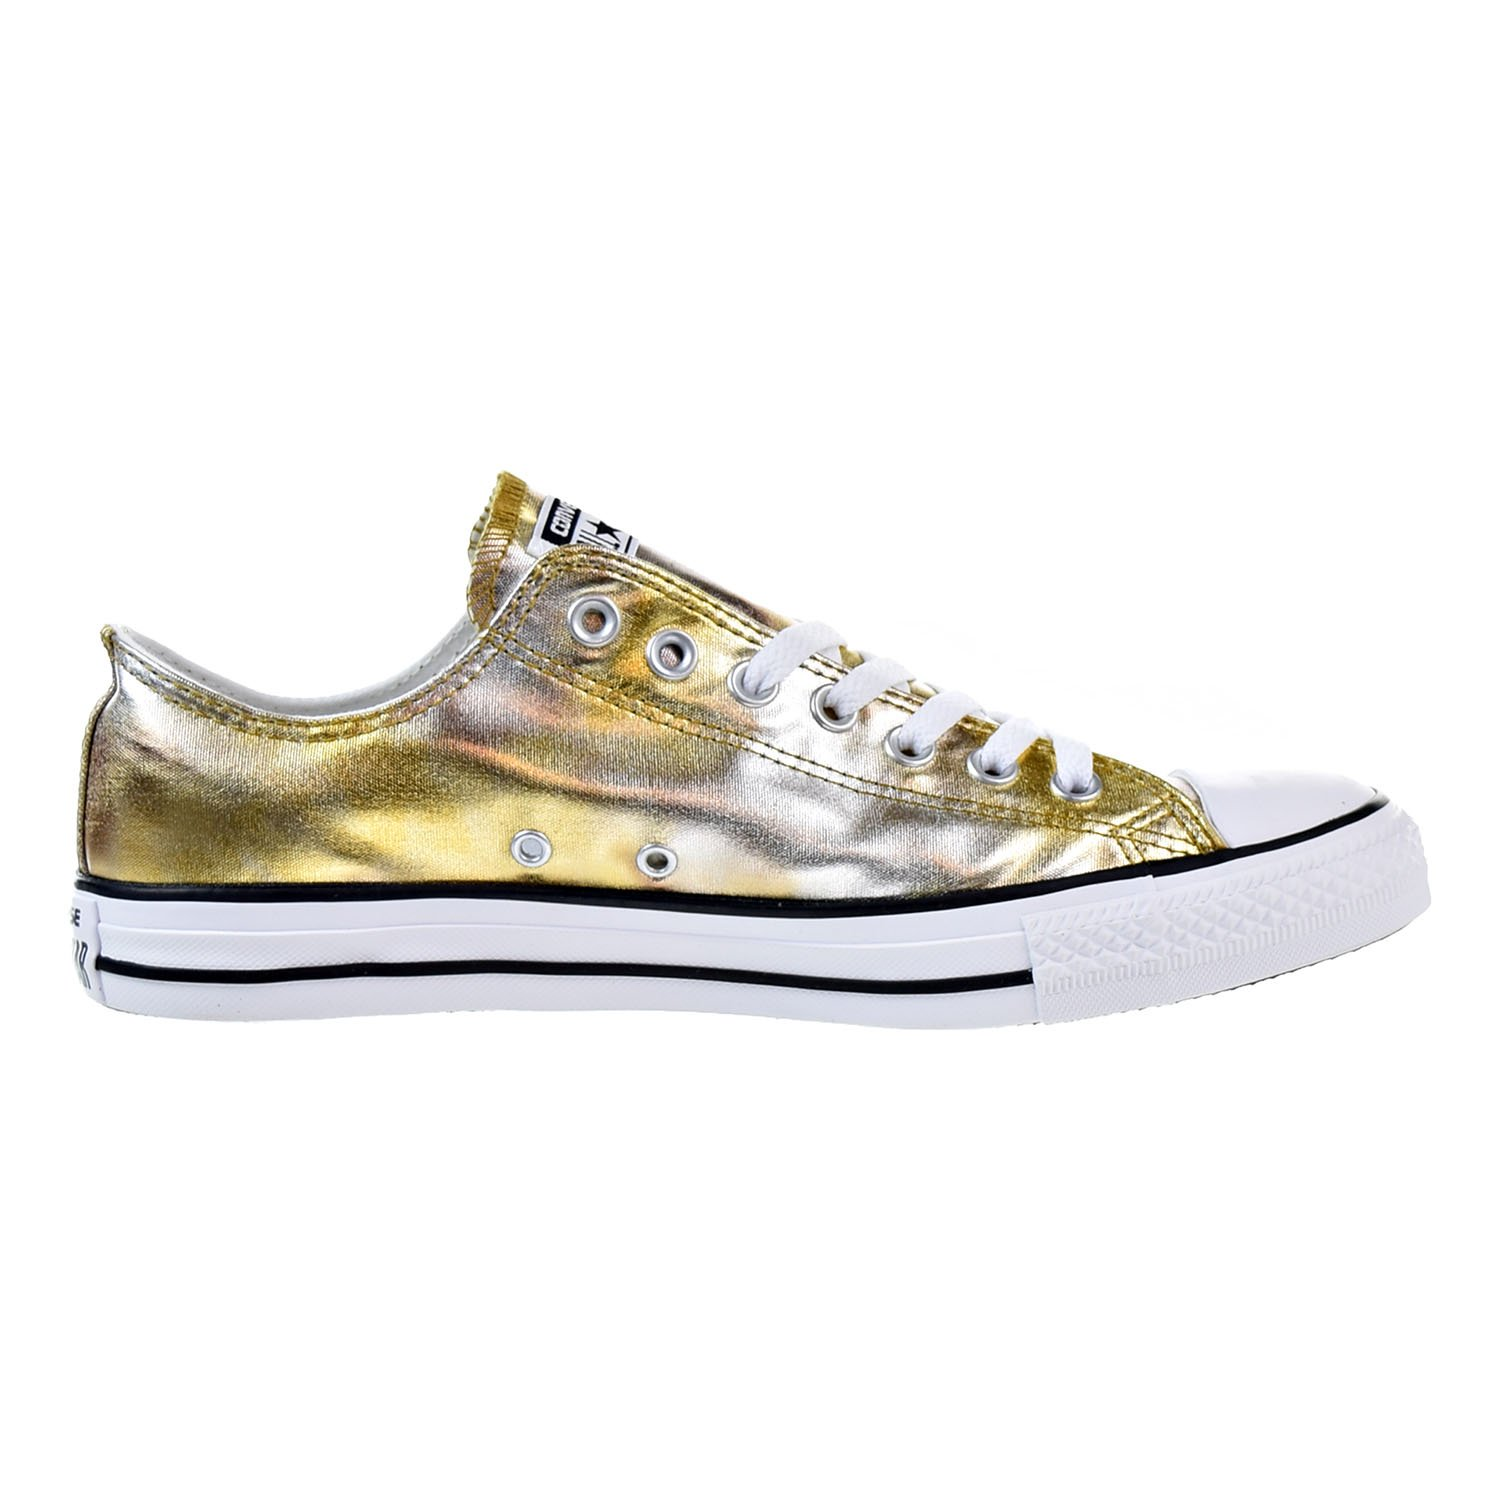 Converse All Star Lo Top Washed Metallic Silver Gold Size 6 Buy Online At Low Prices In India Amazon In